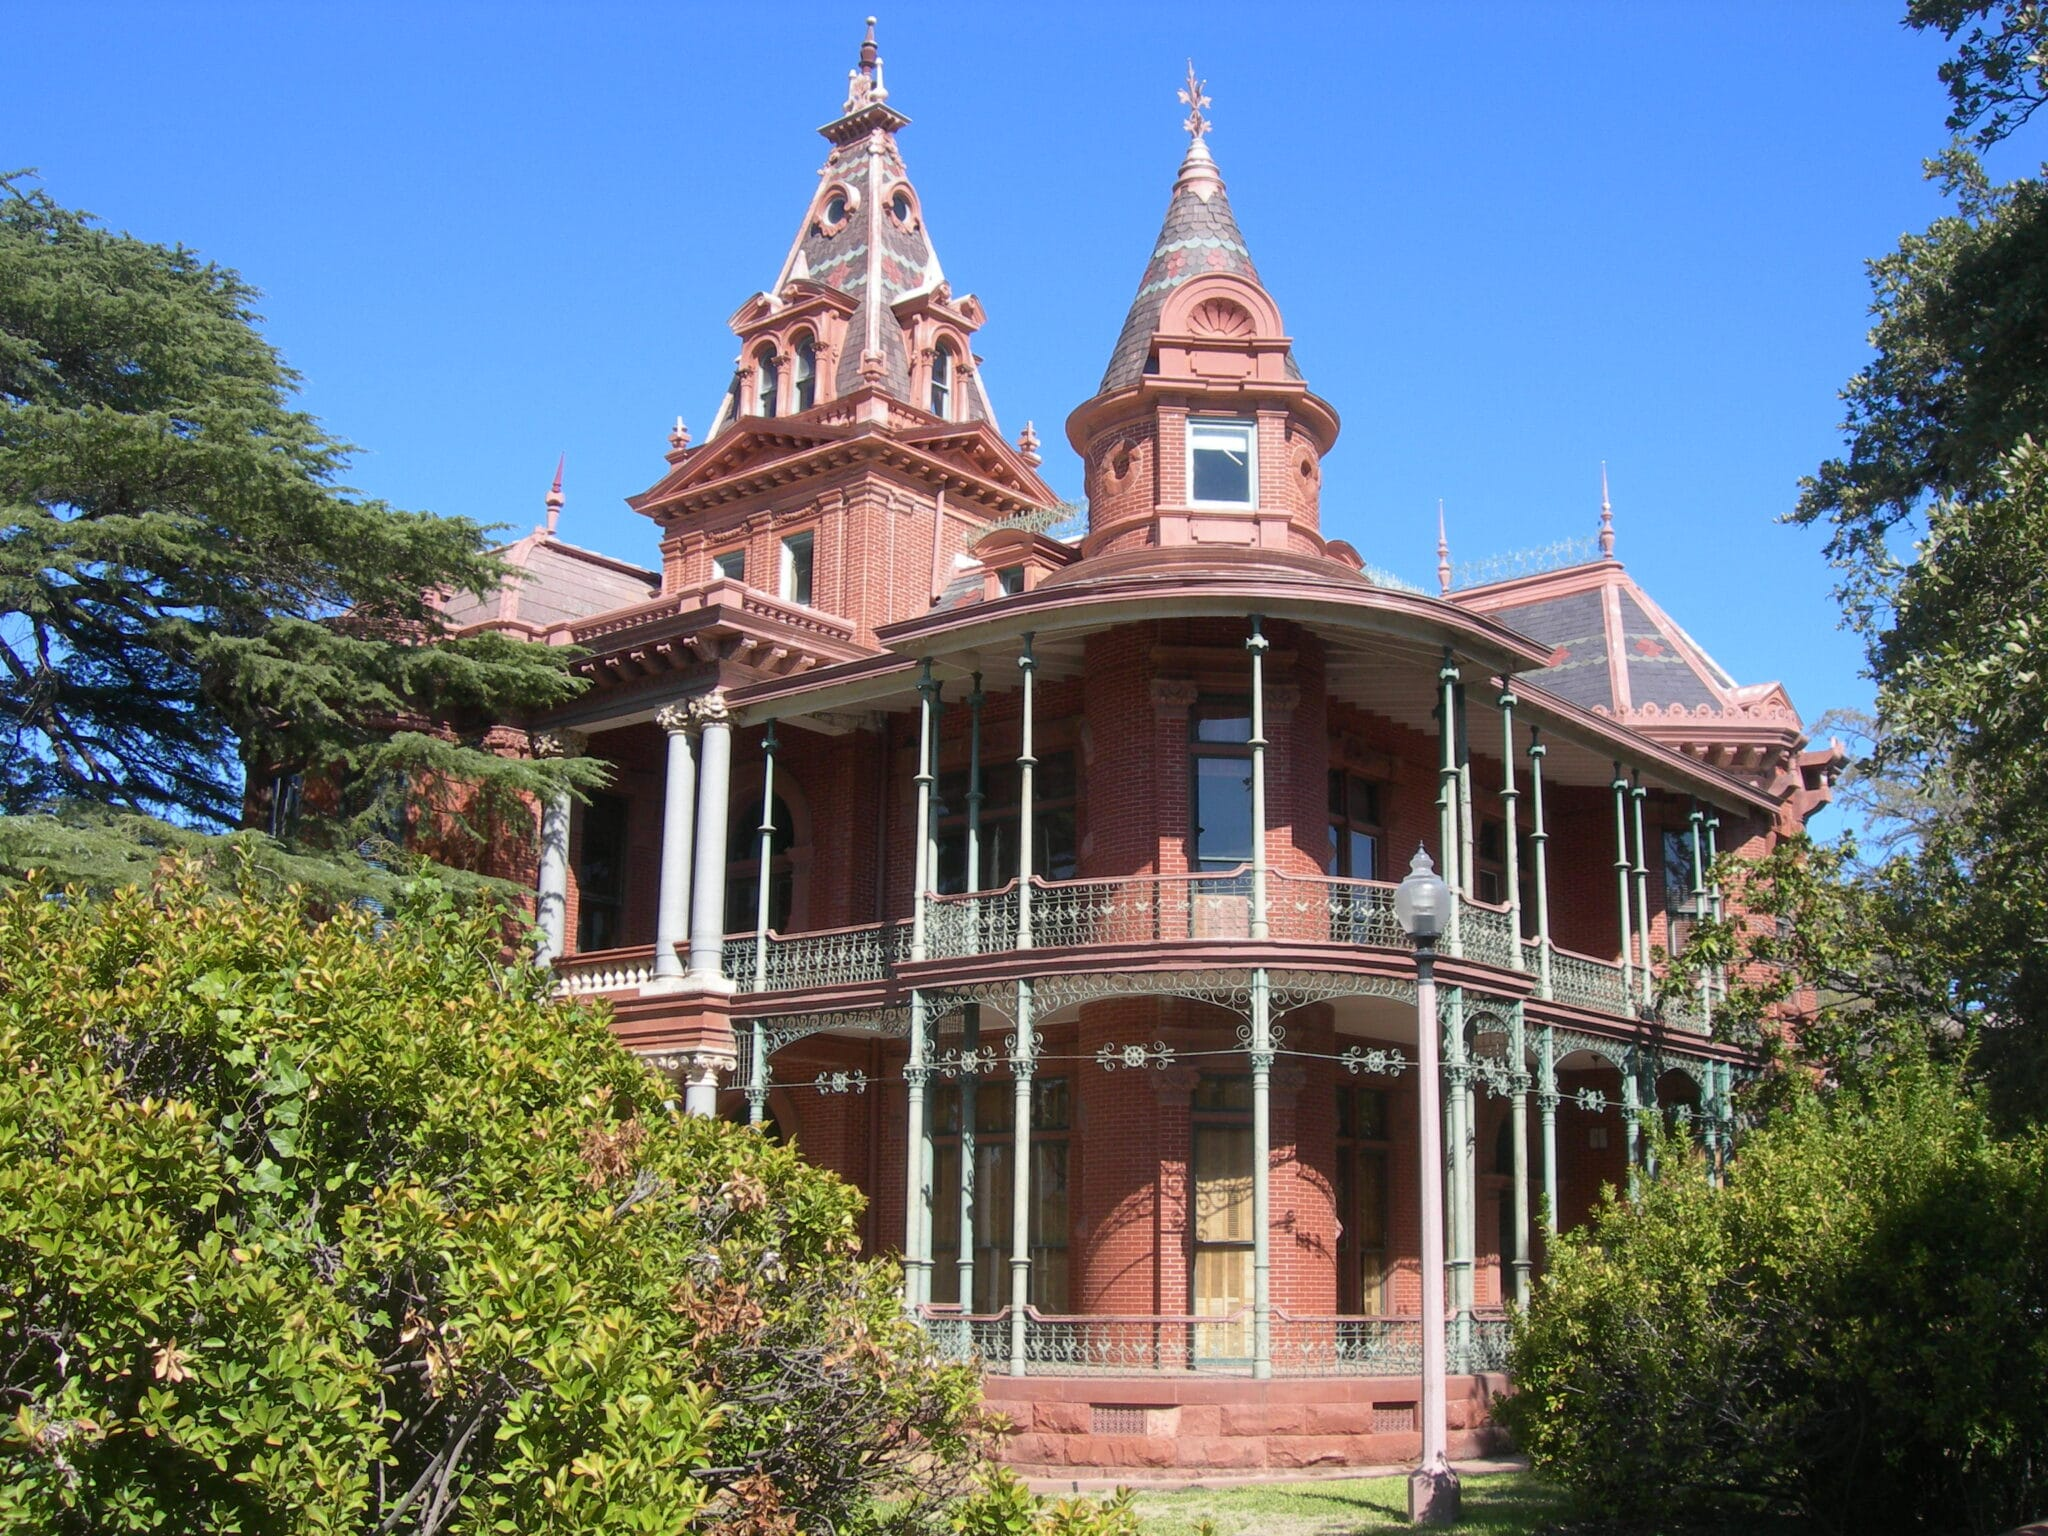 The Littlefield House